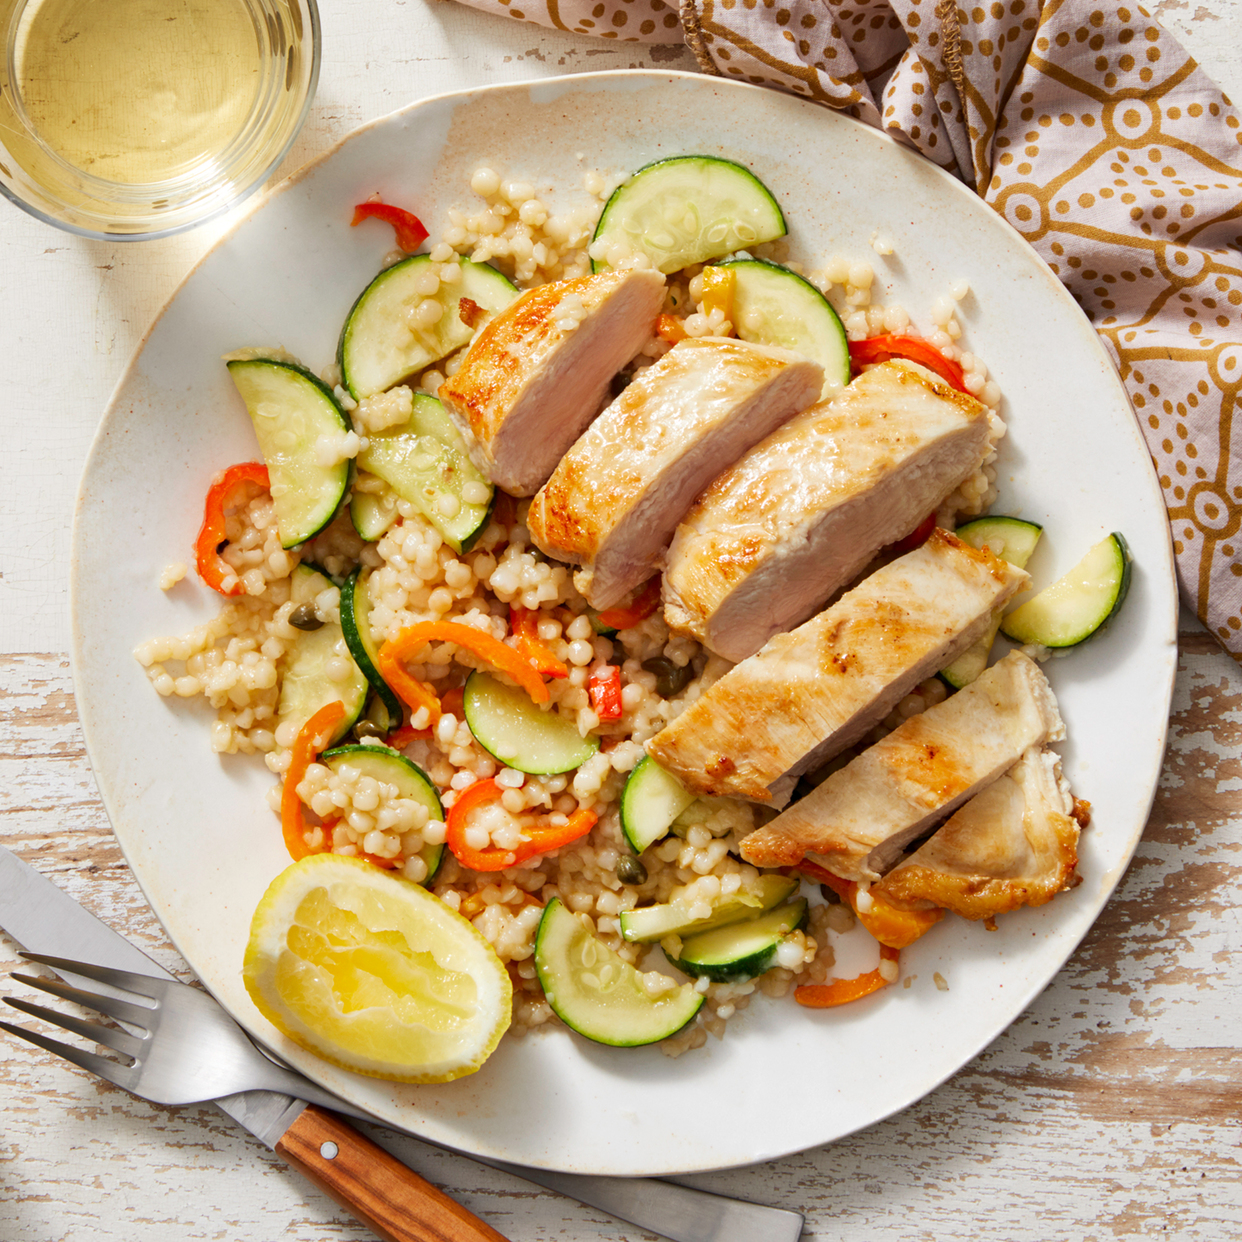 Seared Chicken over Couscous with Peppers, Zucchini, & Caper-Butter Sauce